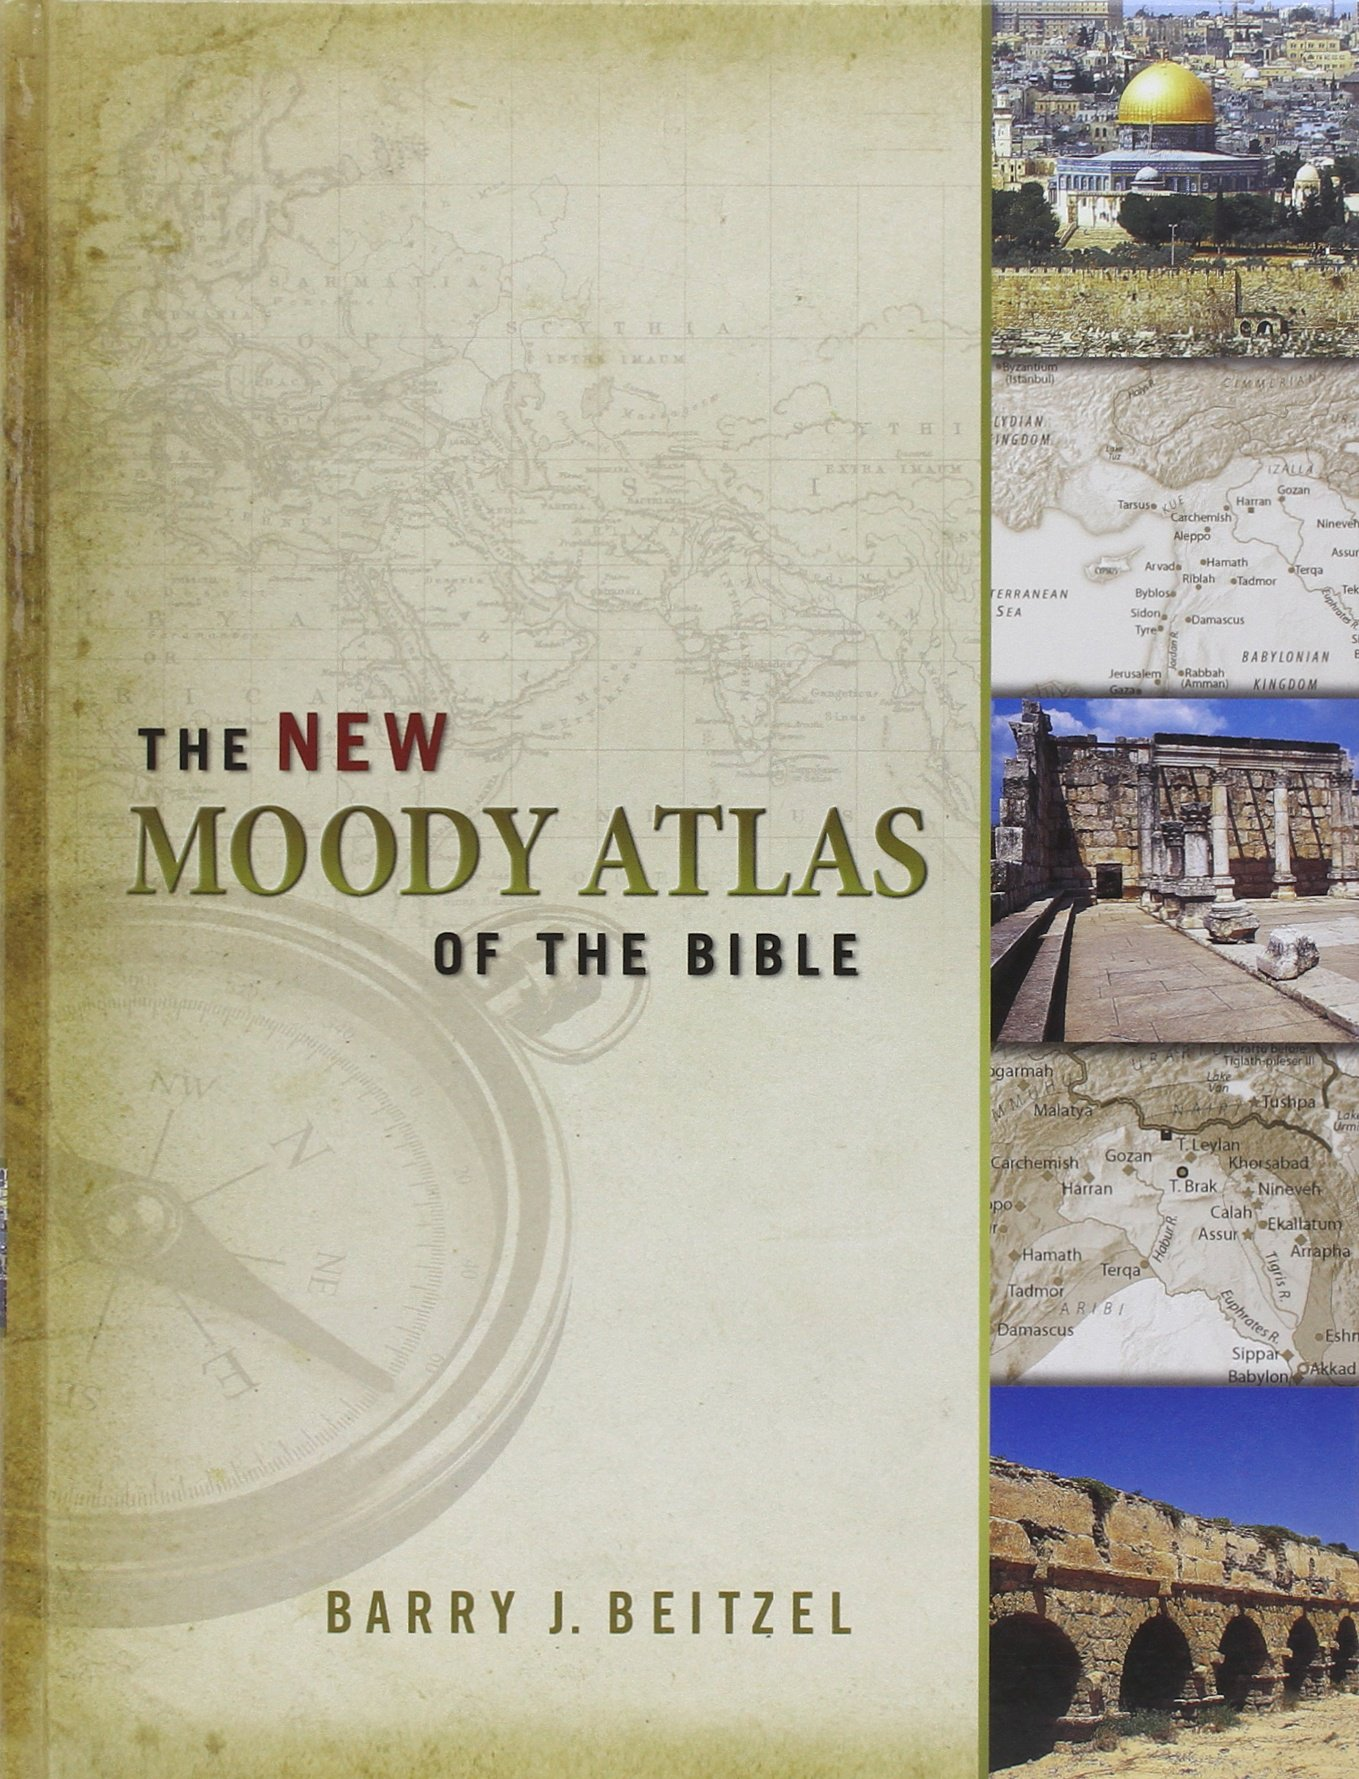 The new moody atlas of the bible barry j beitzel 9780802404411 the new moody atlas of the bible barry j beitzel 9780802404411 amazon books fandeluxe Choice Image